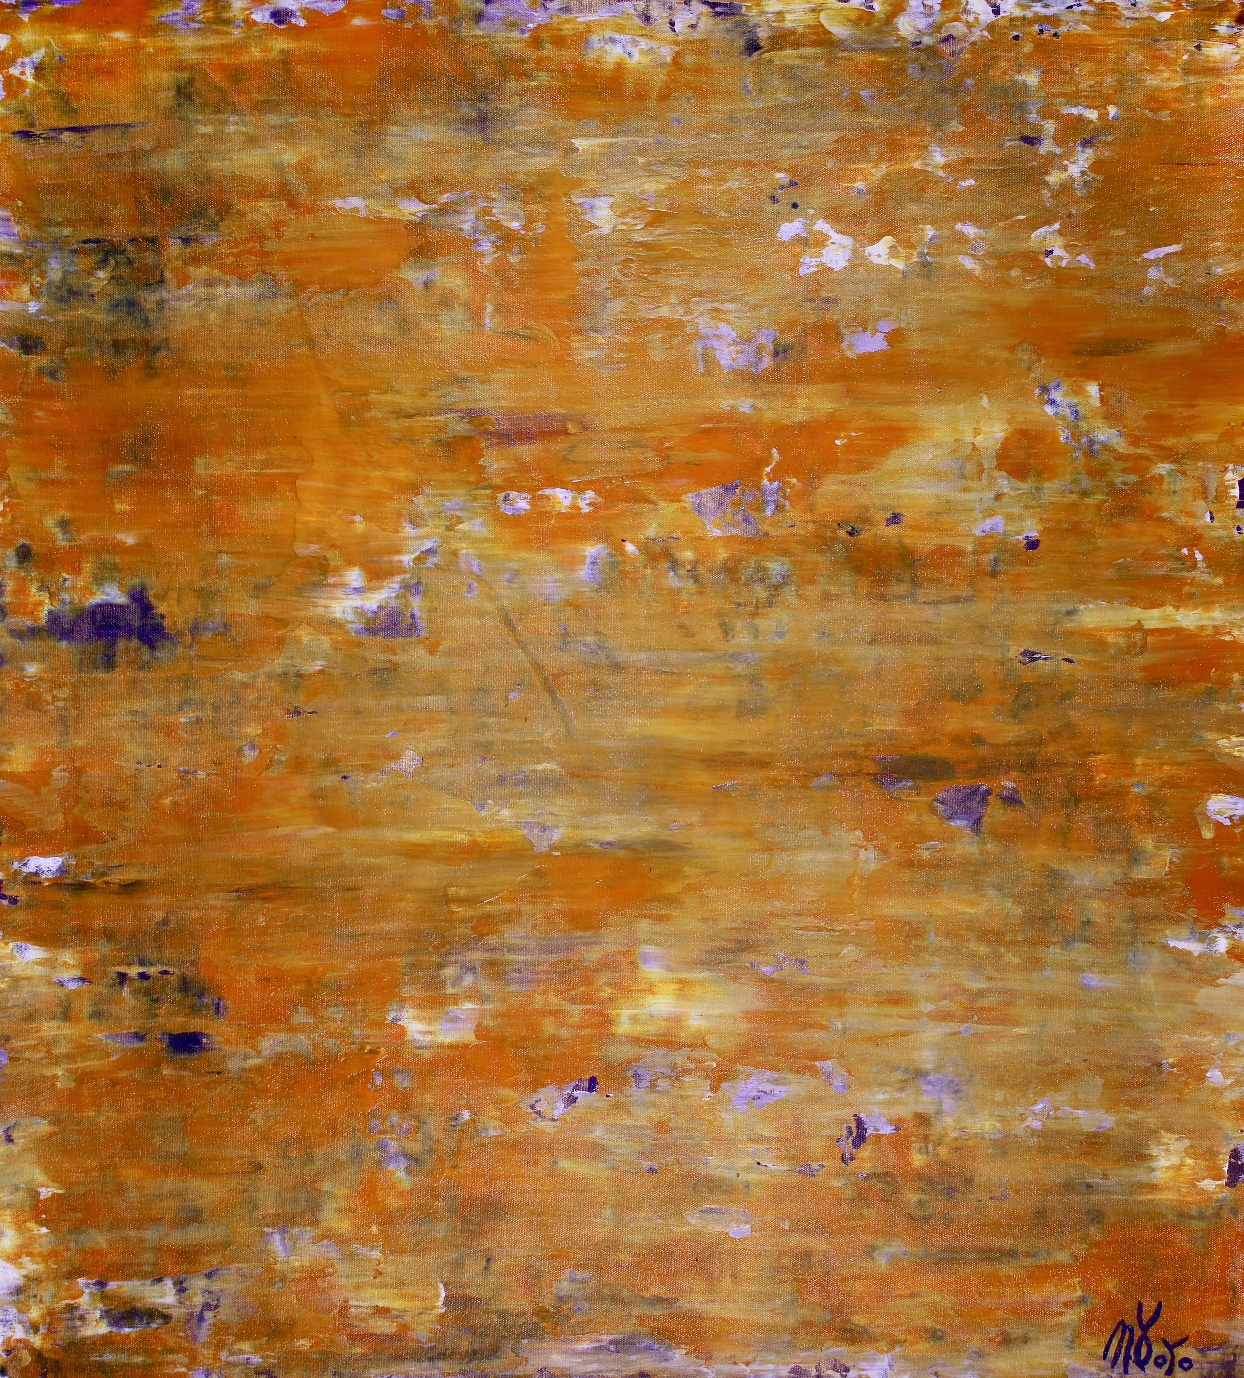 SOLD - Golden Shadows over purple by Nestor Toro - SOLD